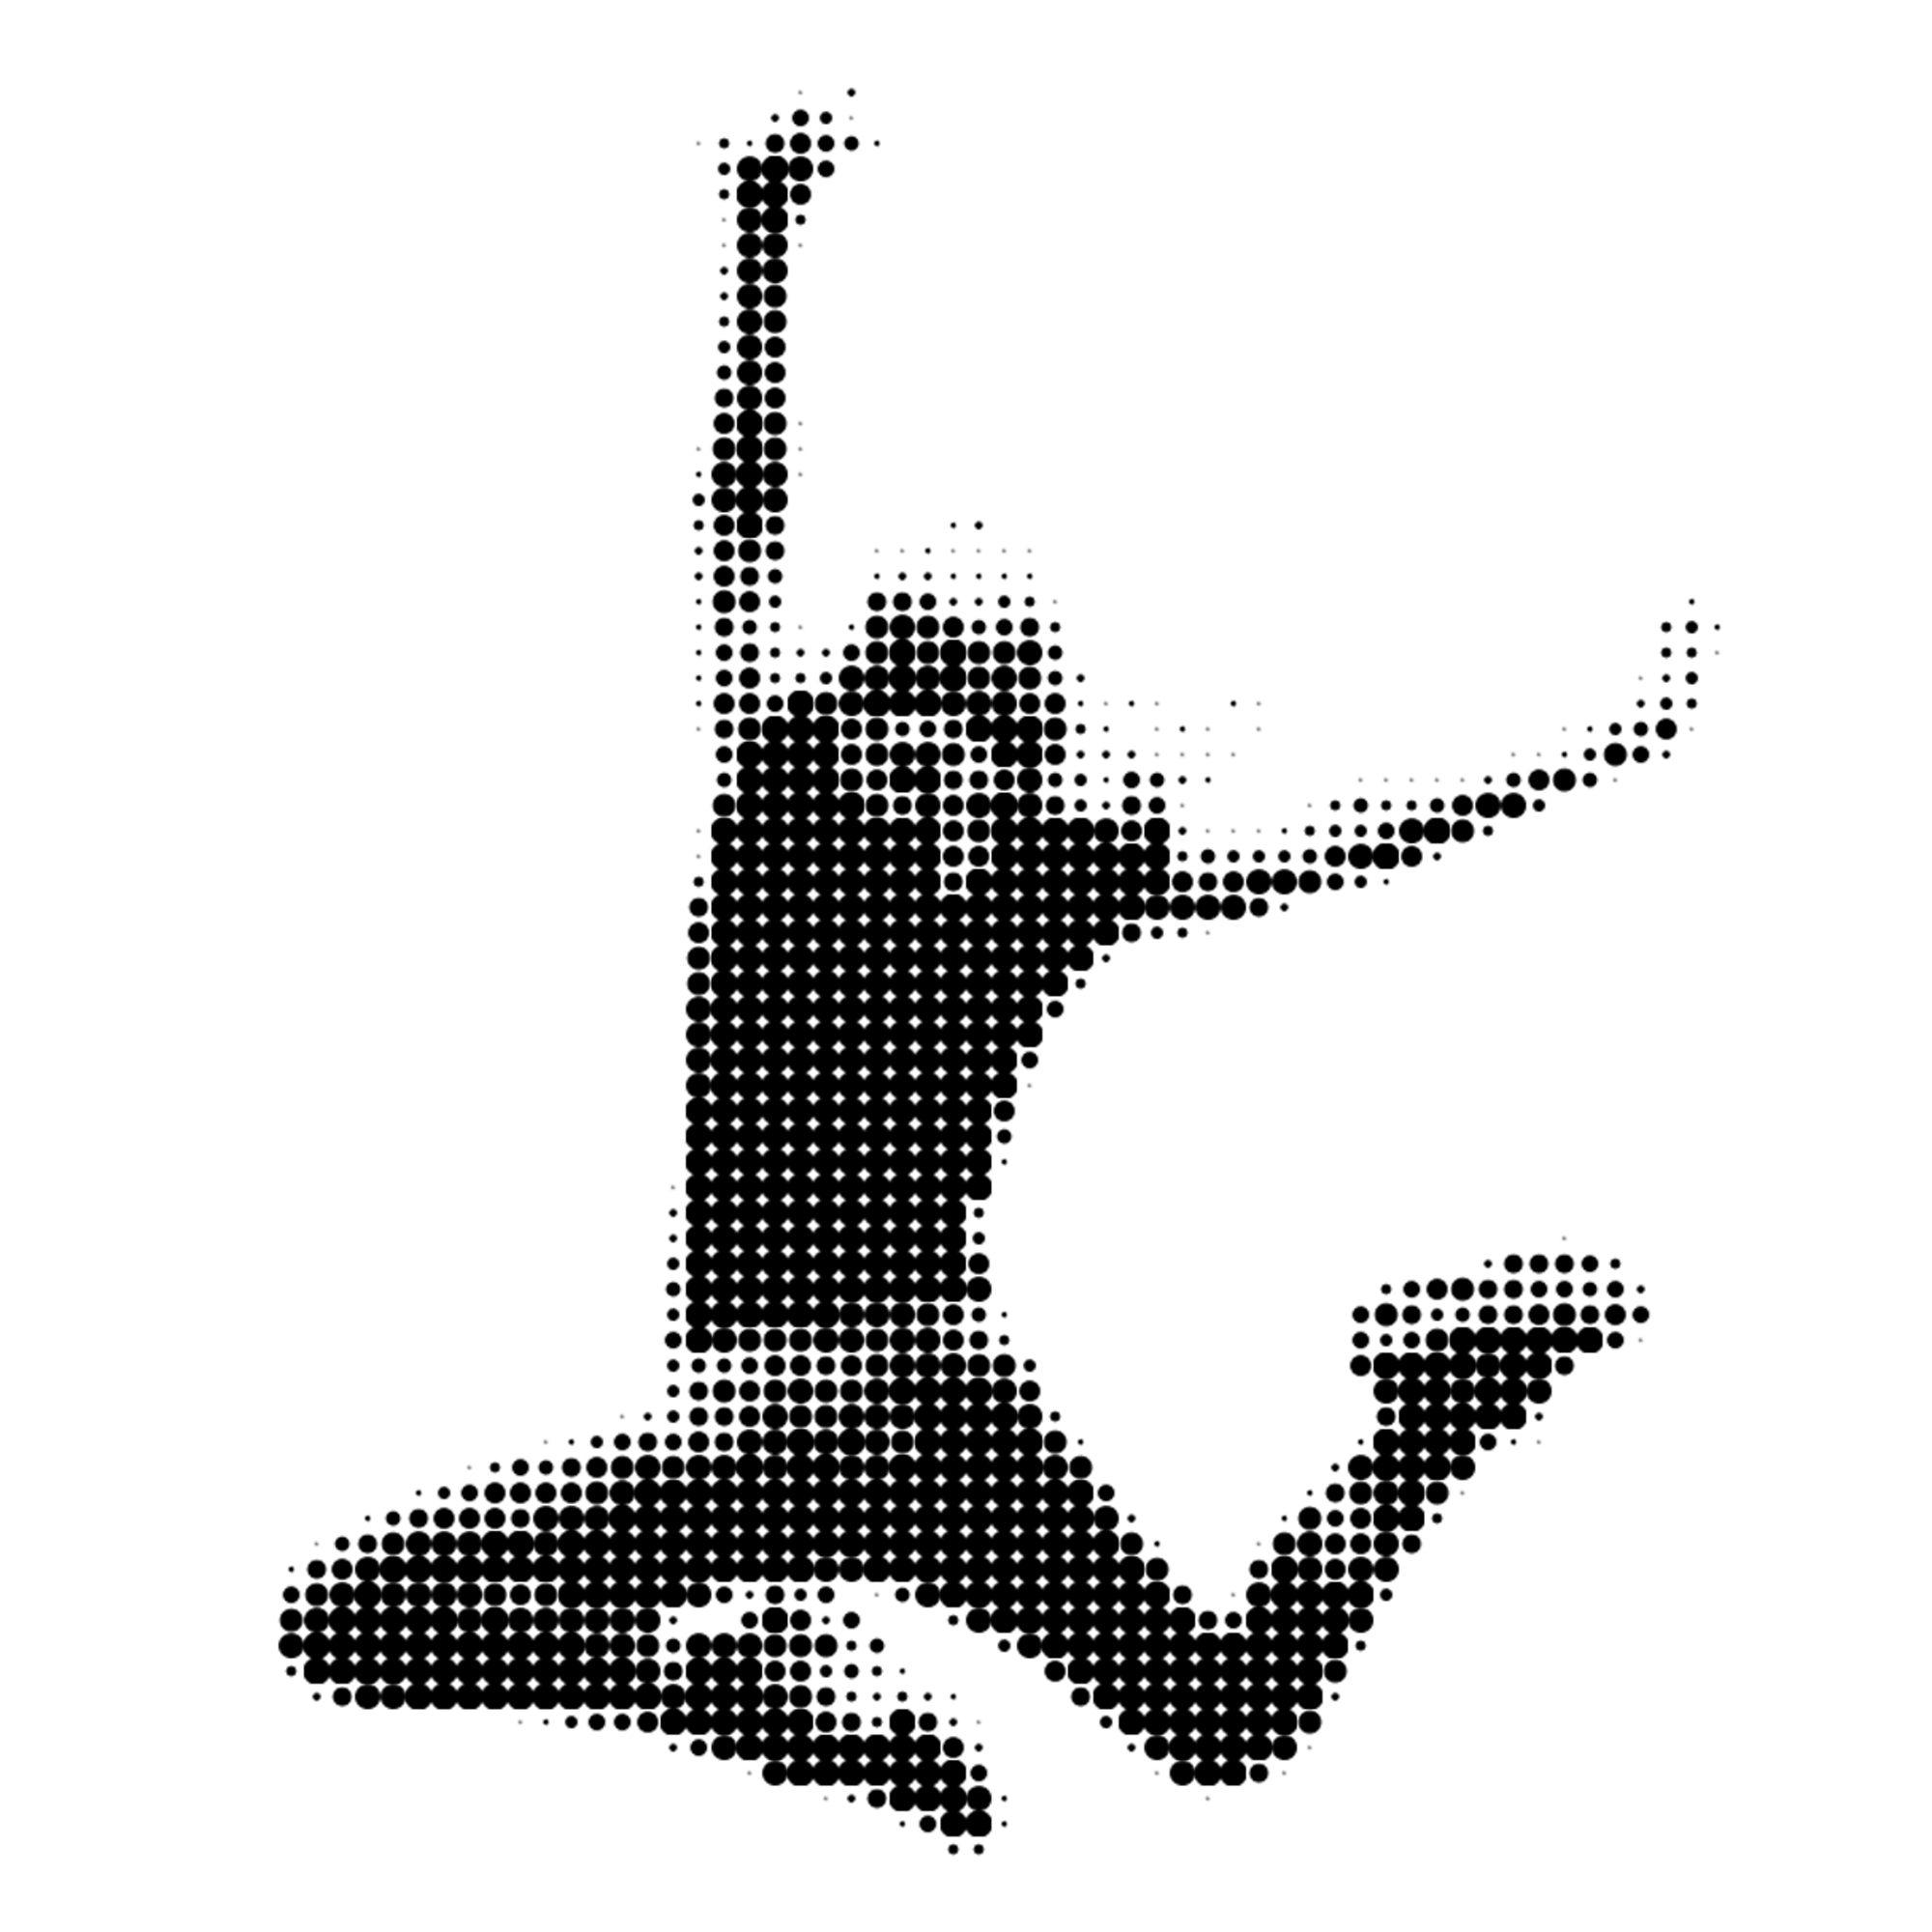 Woman jumping with a halftone filter